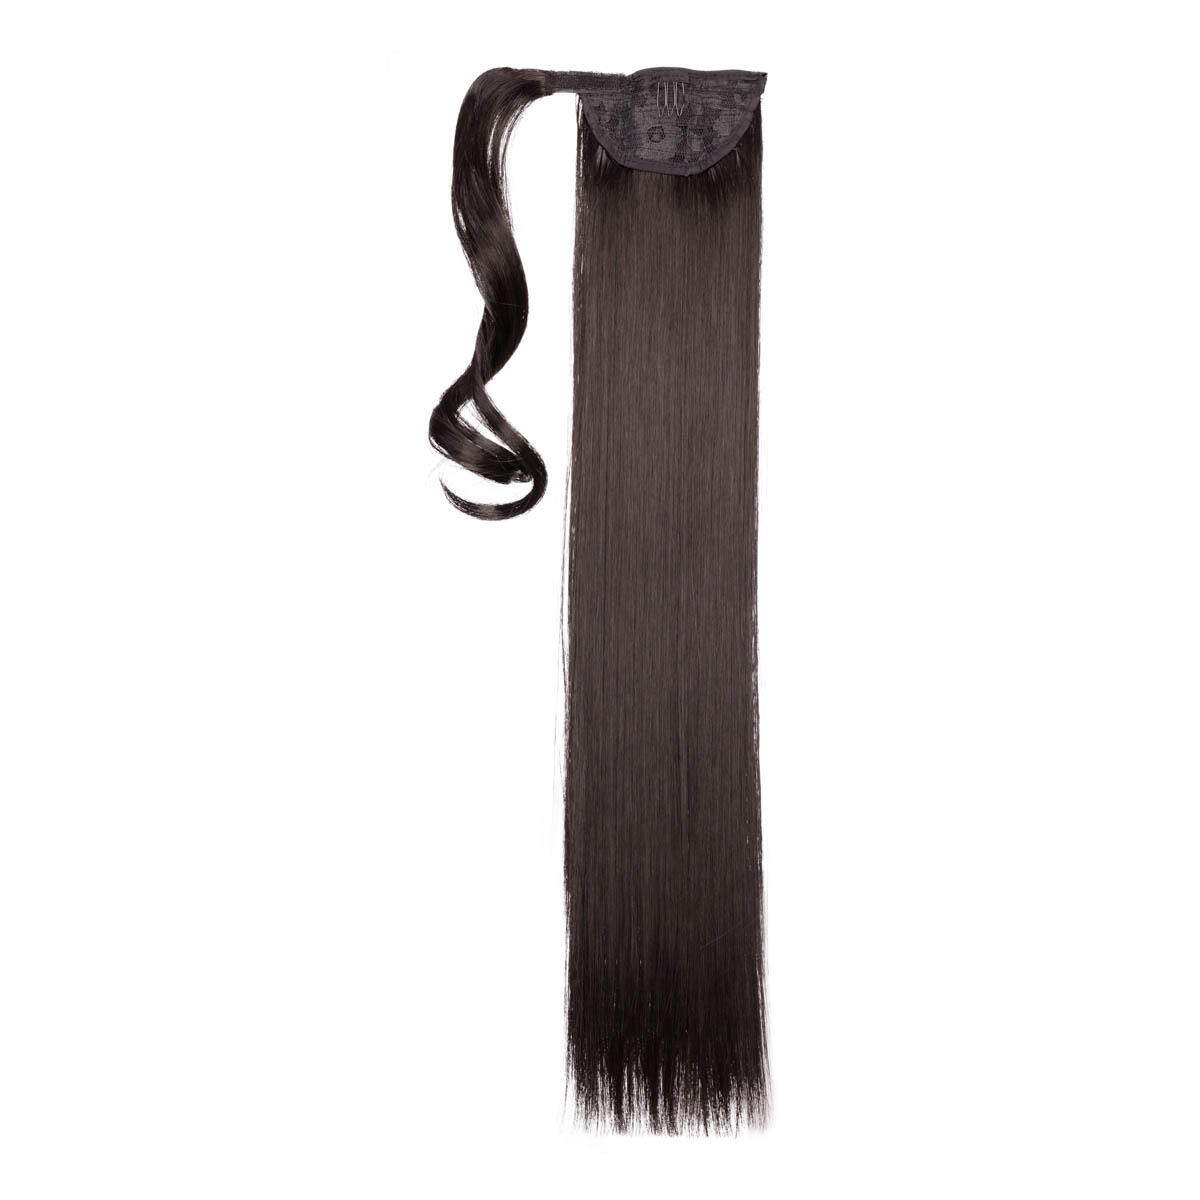 Clip-in Ponytail Synthetic 1.2 Black Brown 50 cm